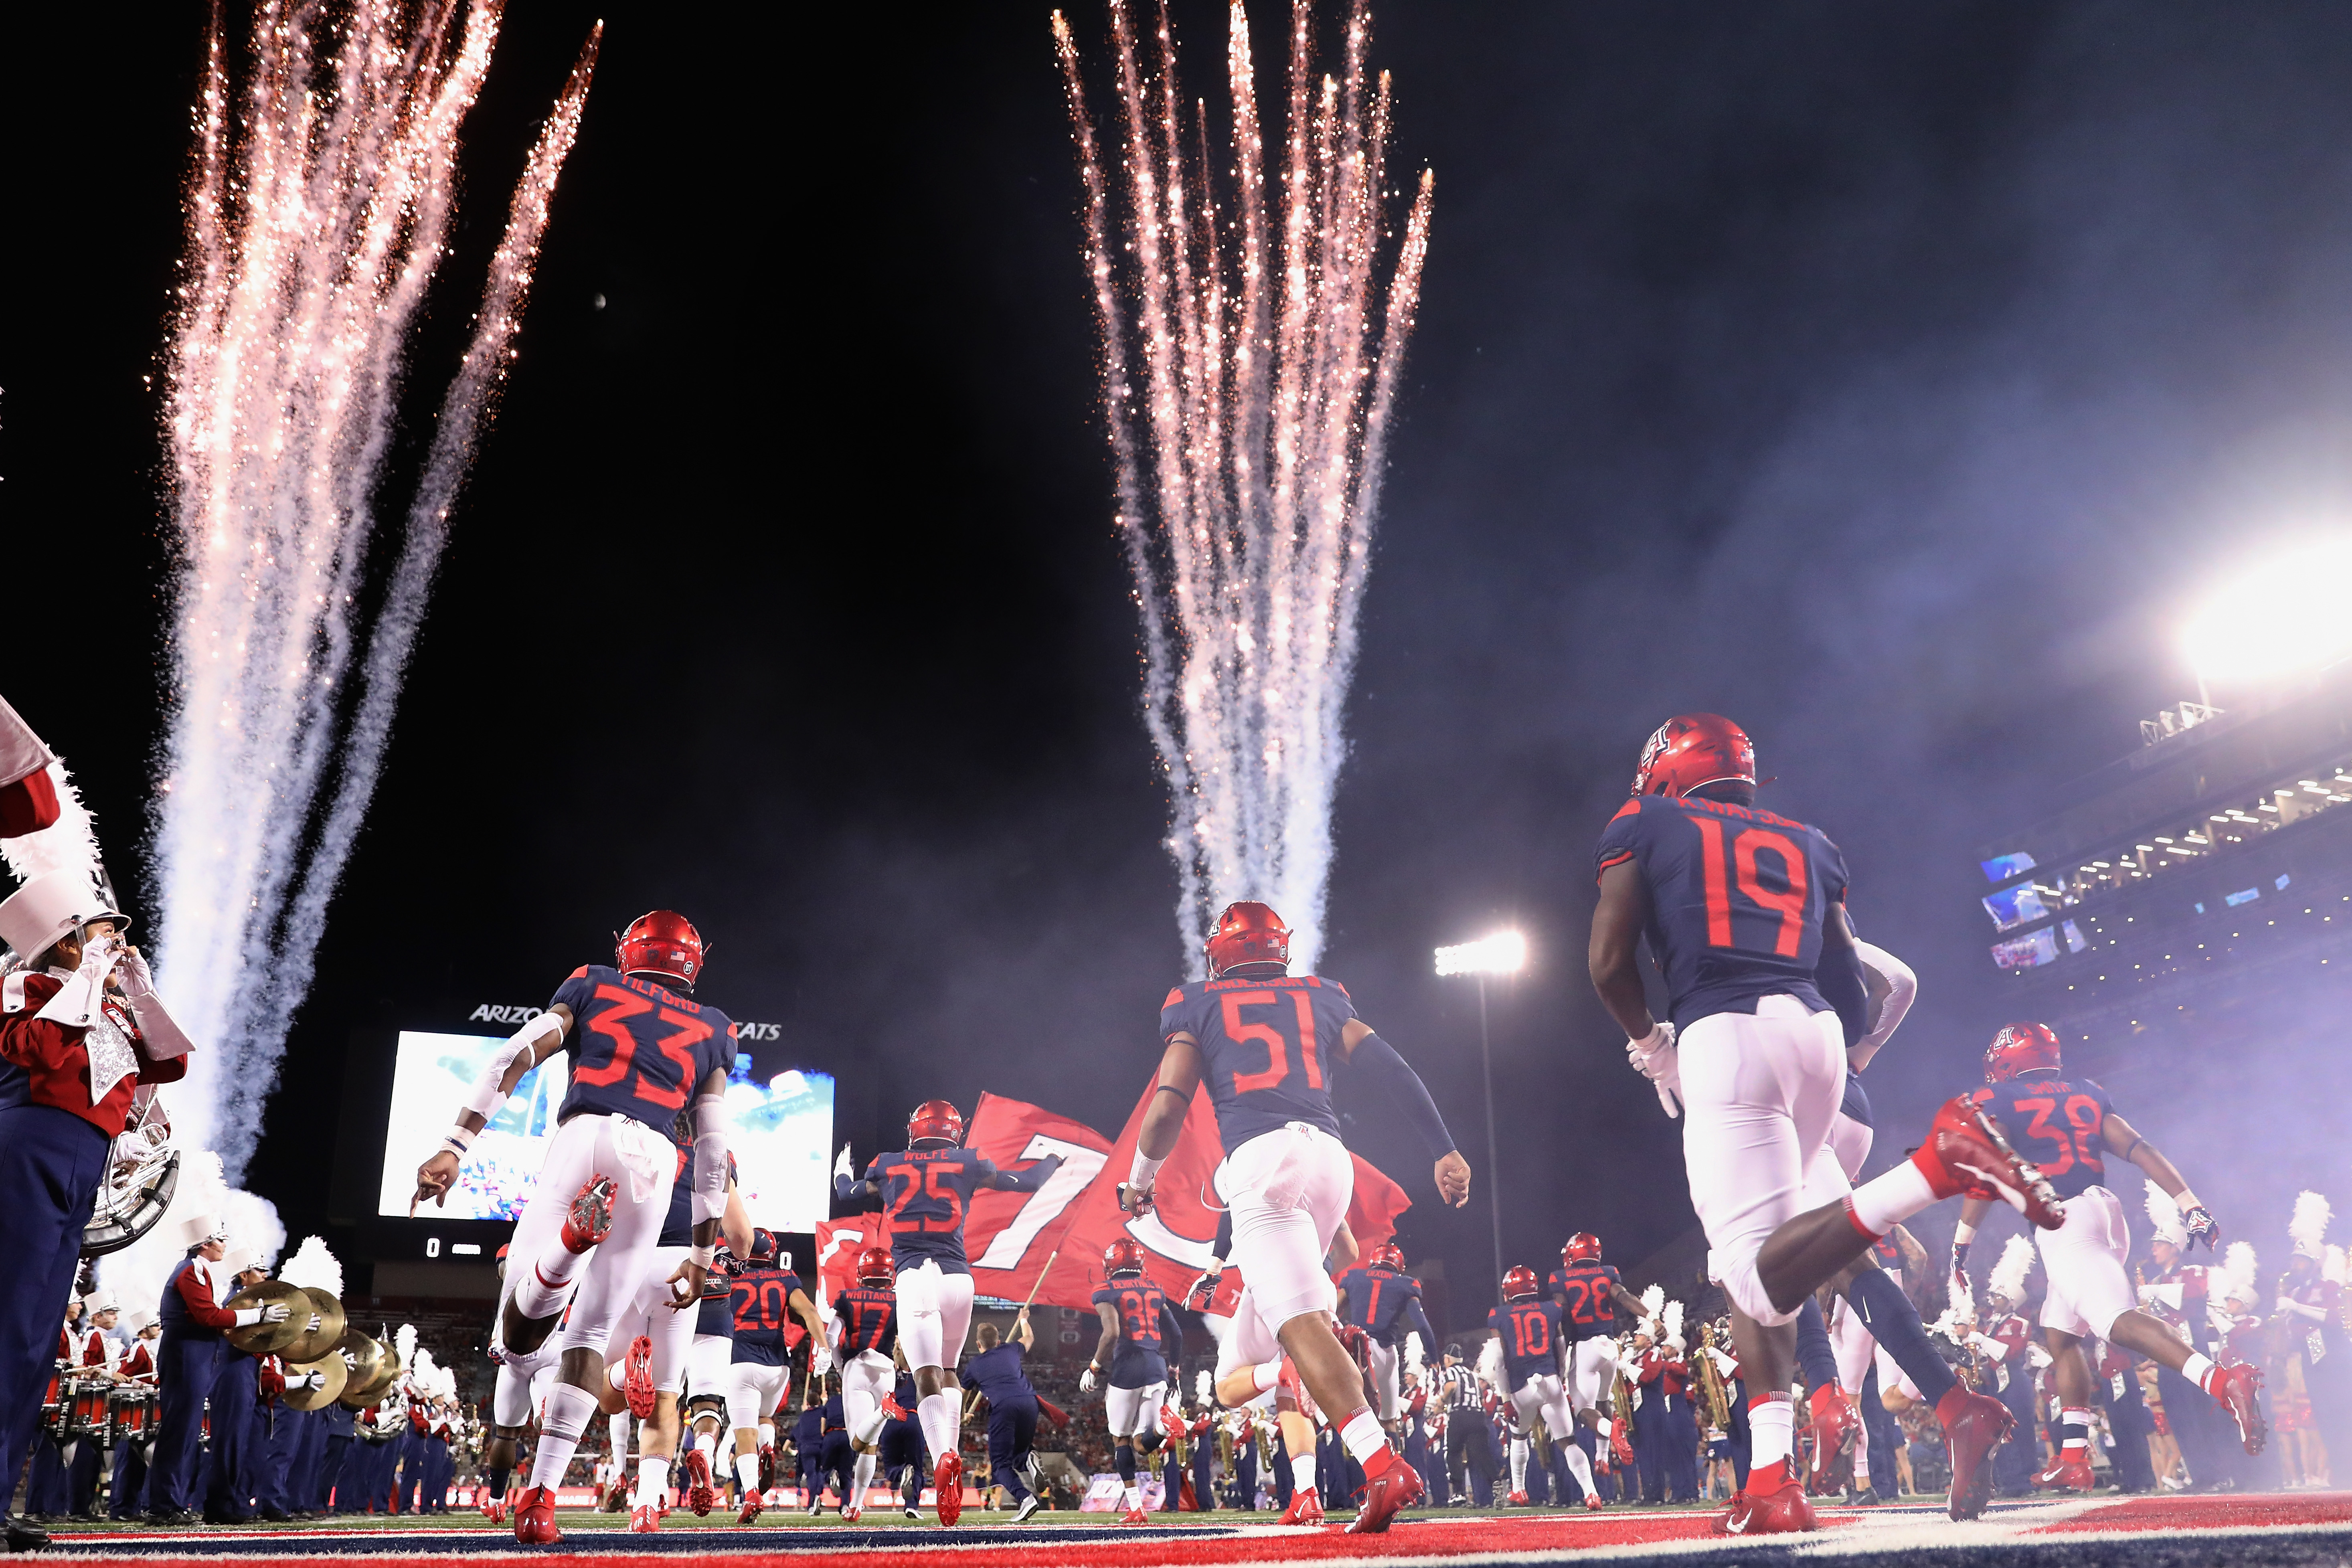 arizona-vs-texas-tech-week-3-game-time-tv-channel-odds-radio-how-to-watch-online-college-football